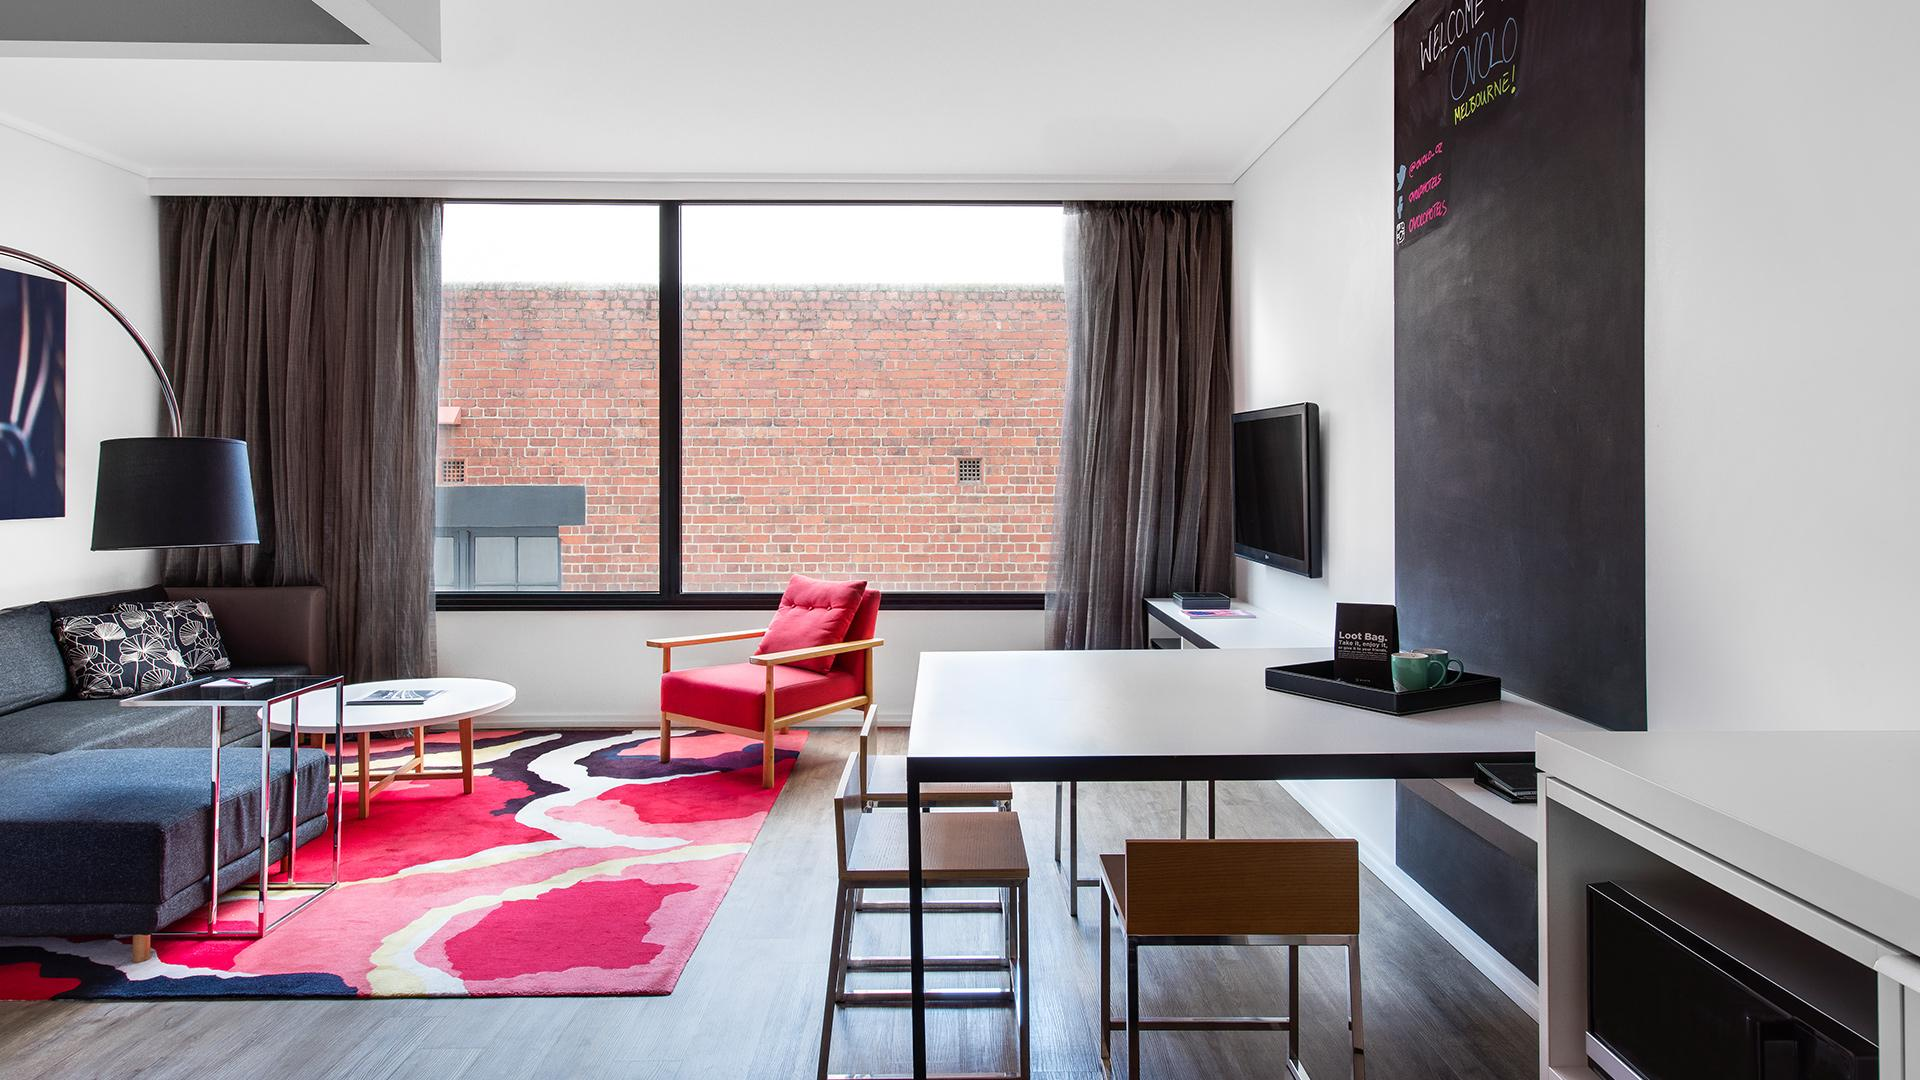 Two-Bedroom Suite image 1 at Ovolo Laneways by Melbourne City, Victoria, Australia